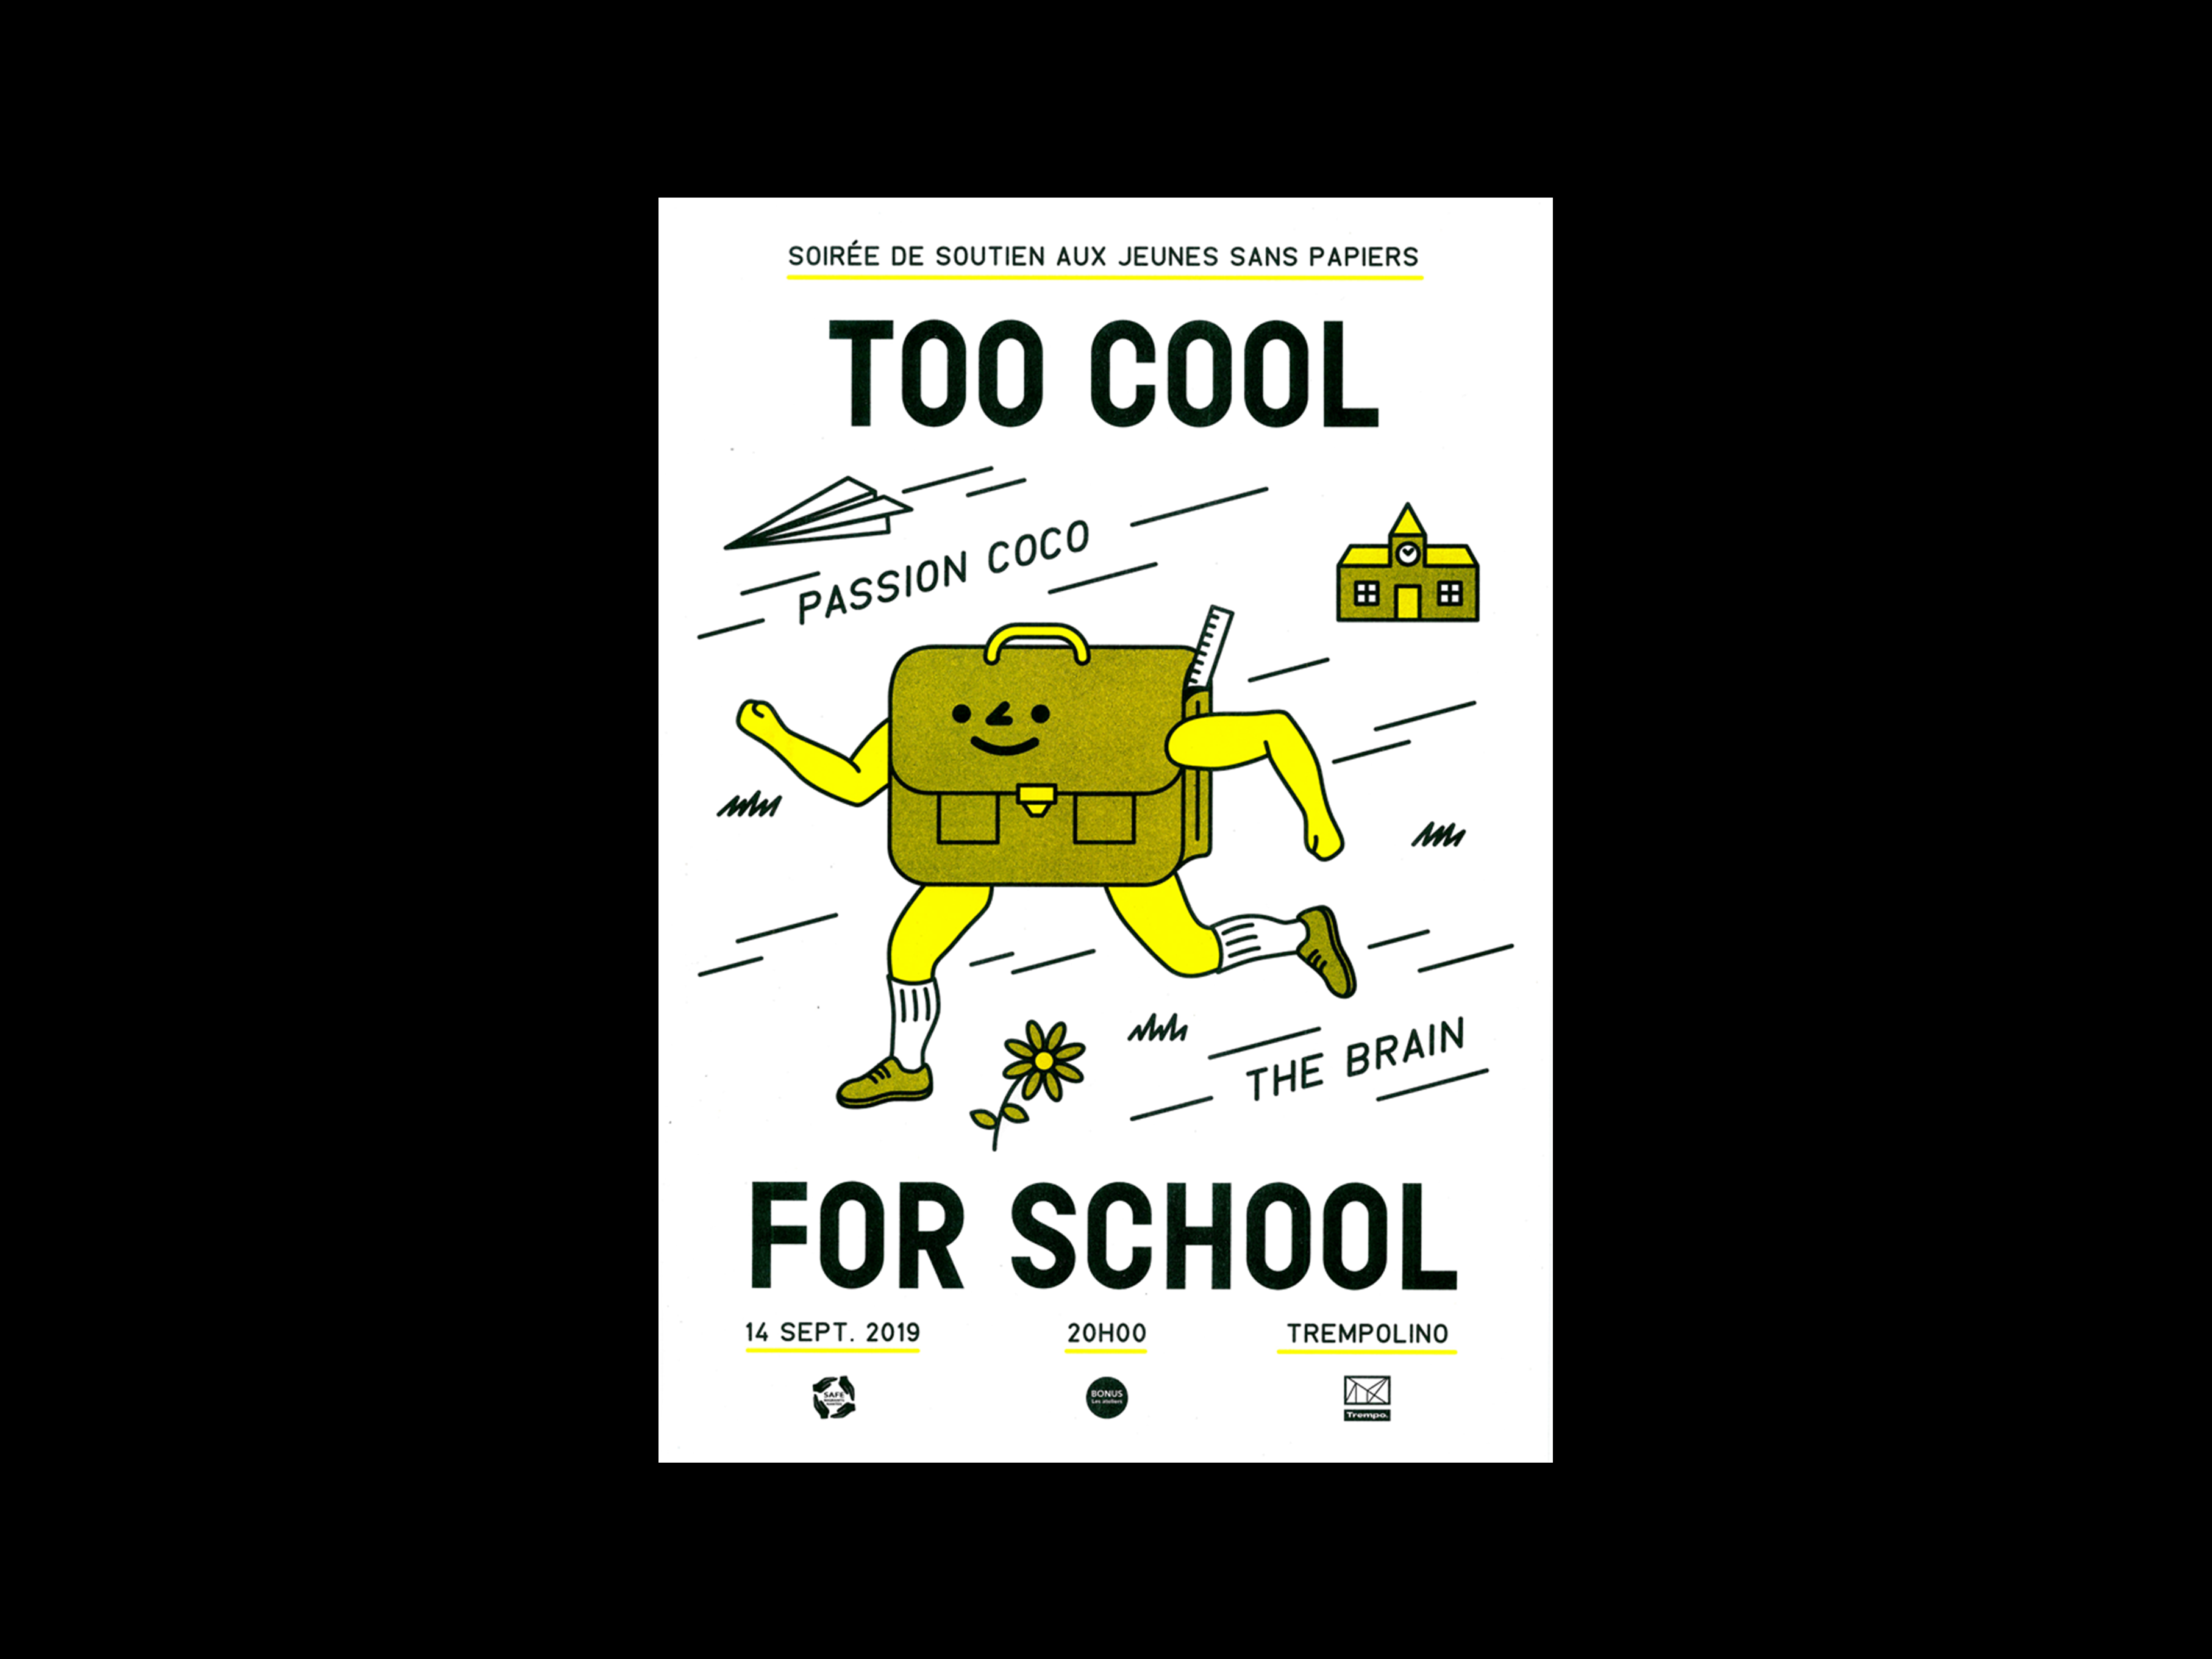 Too Cool for School fundraiser - Fonts In Use